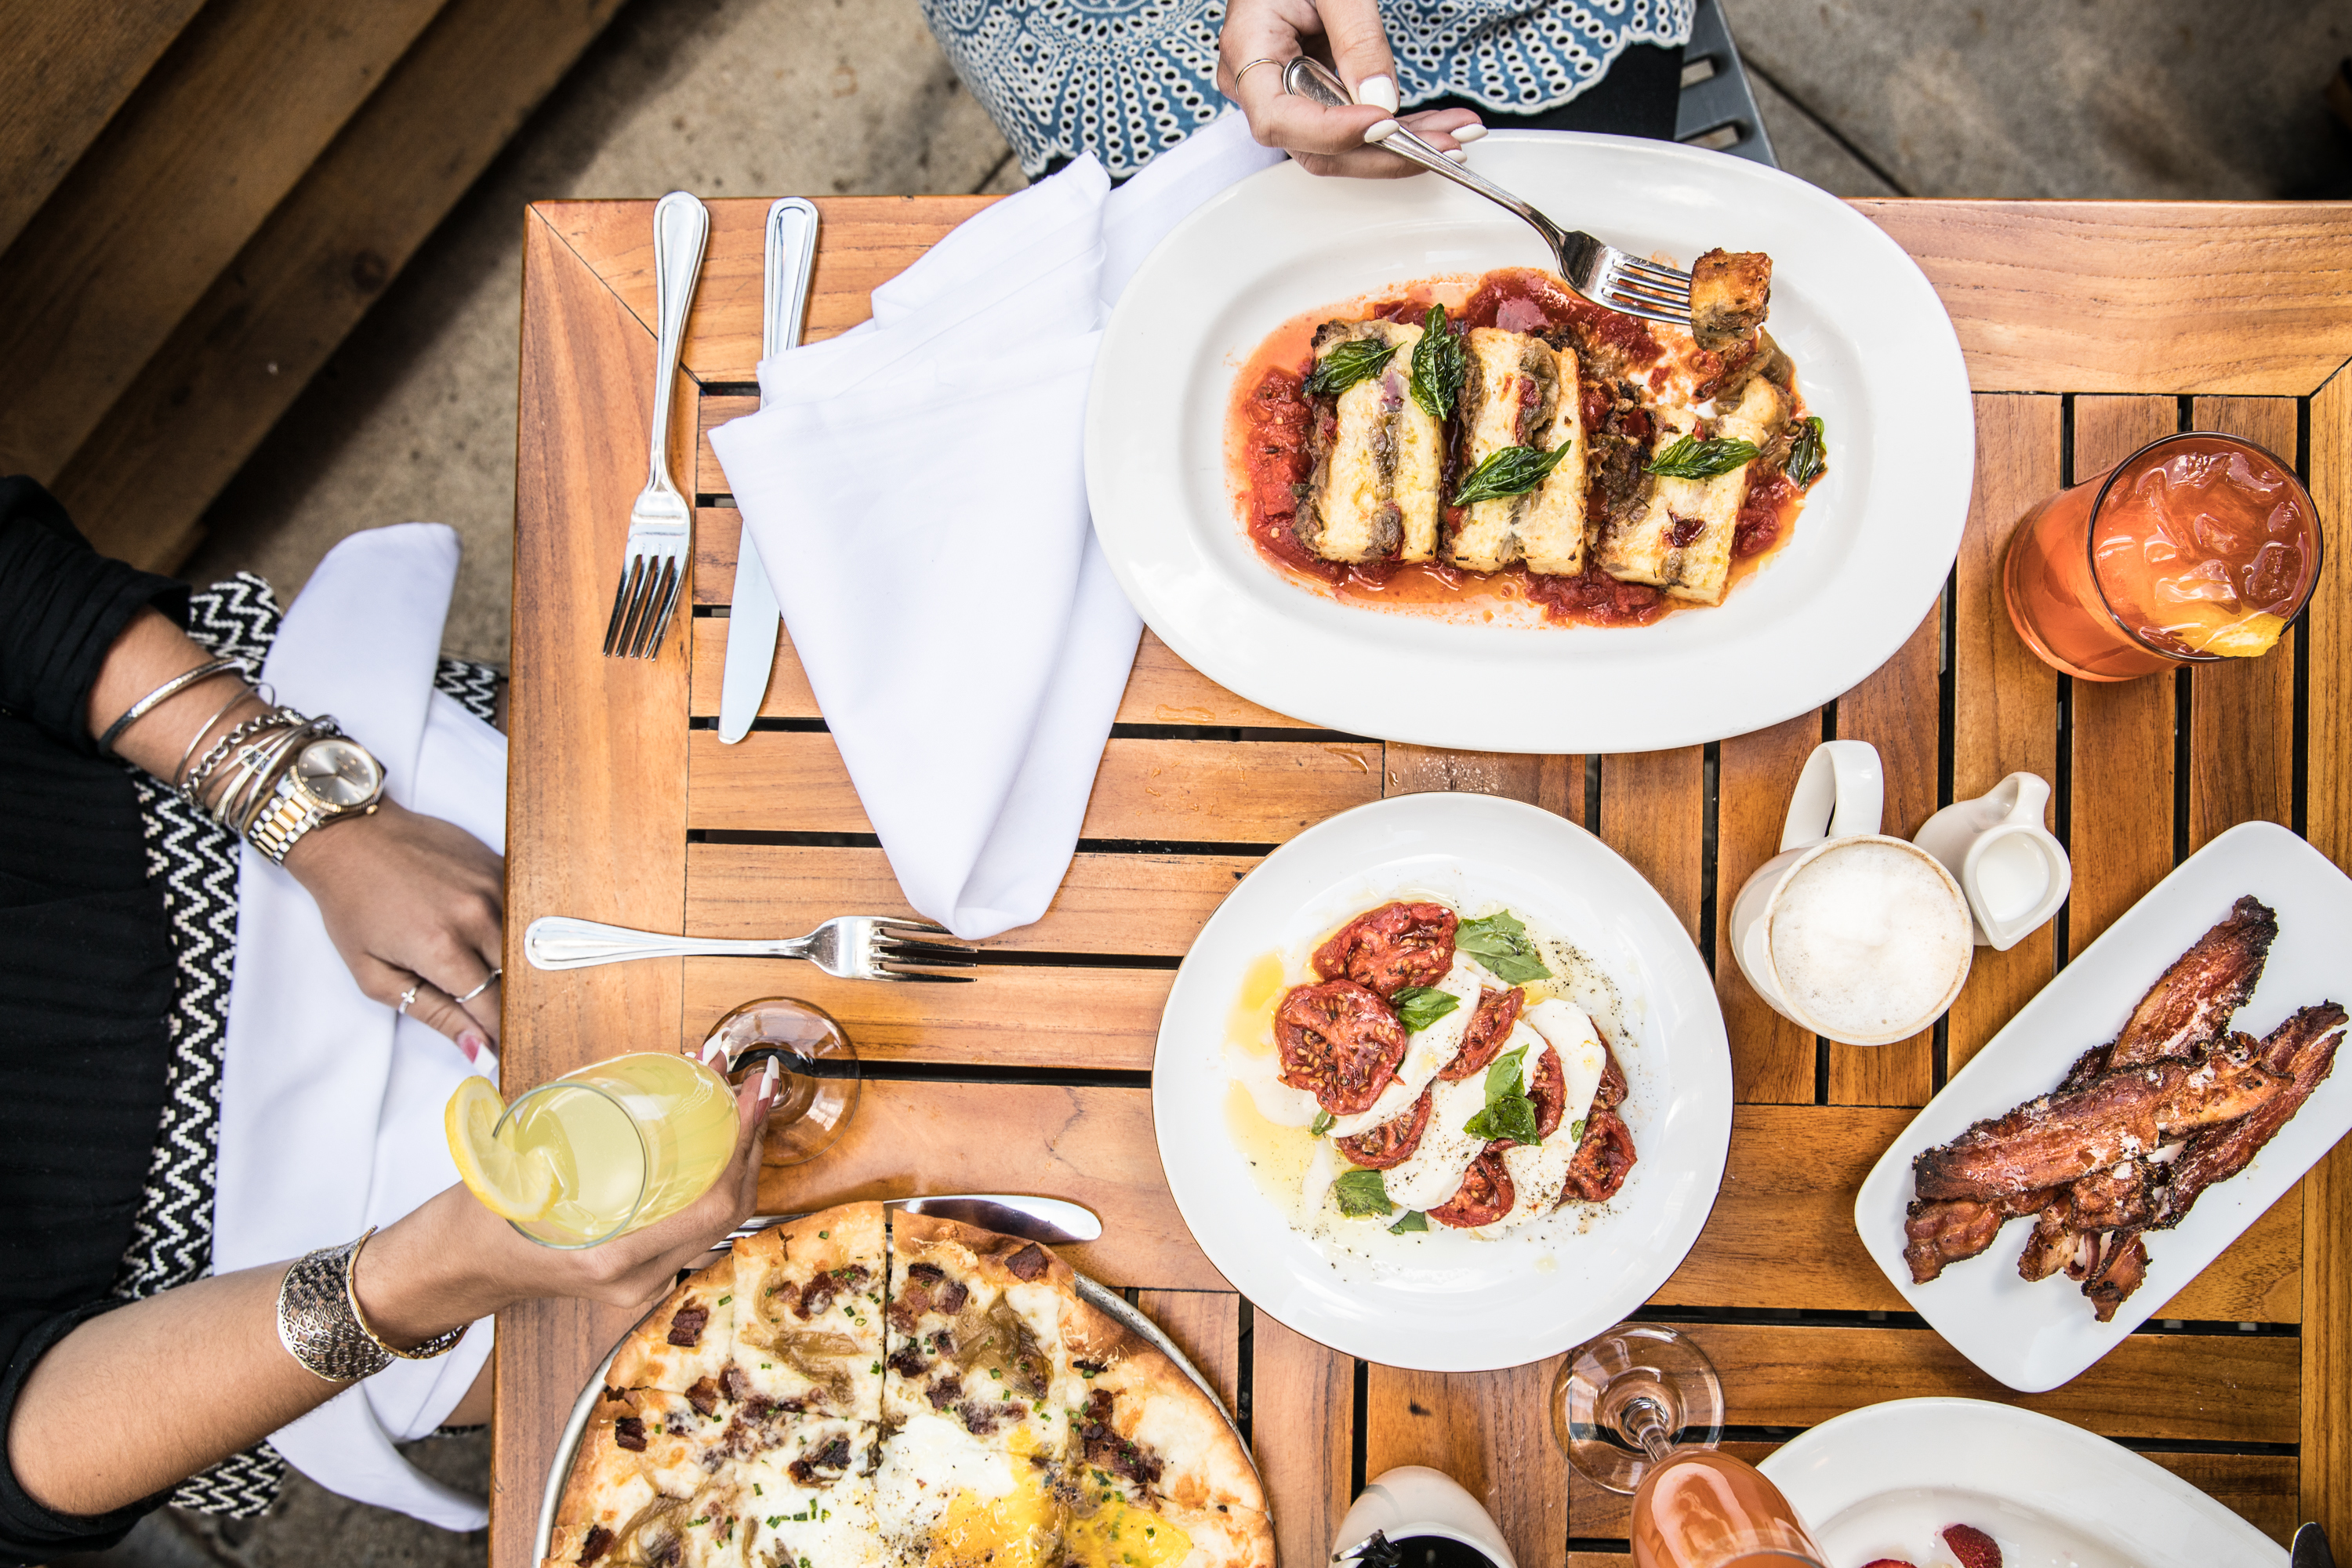 Where to eat brunch outside in Chicago